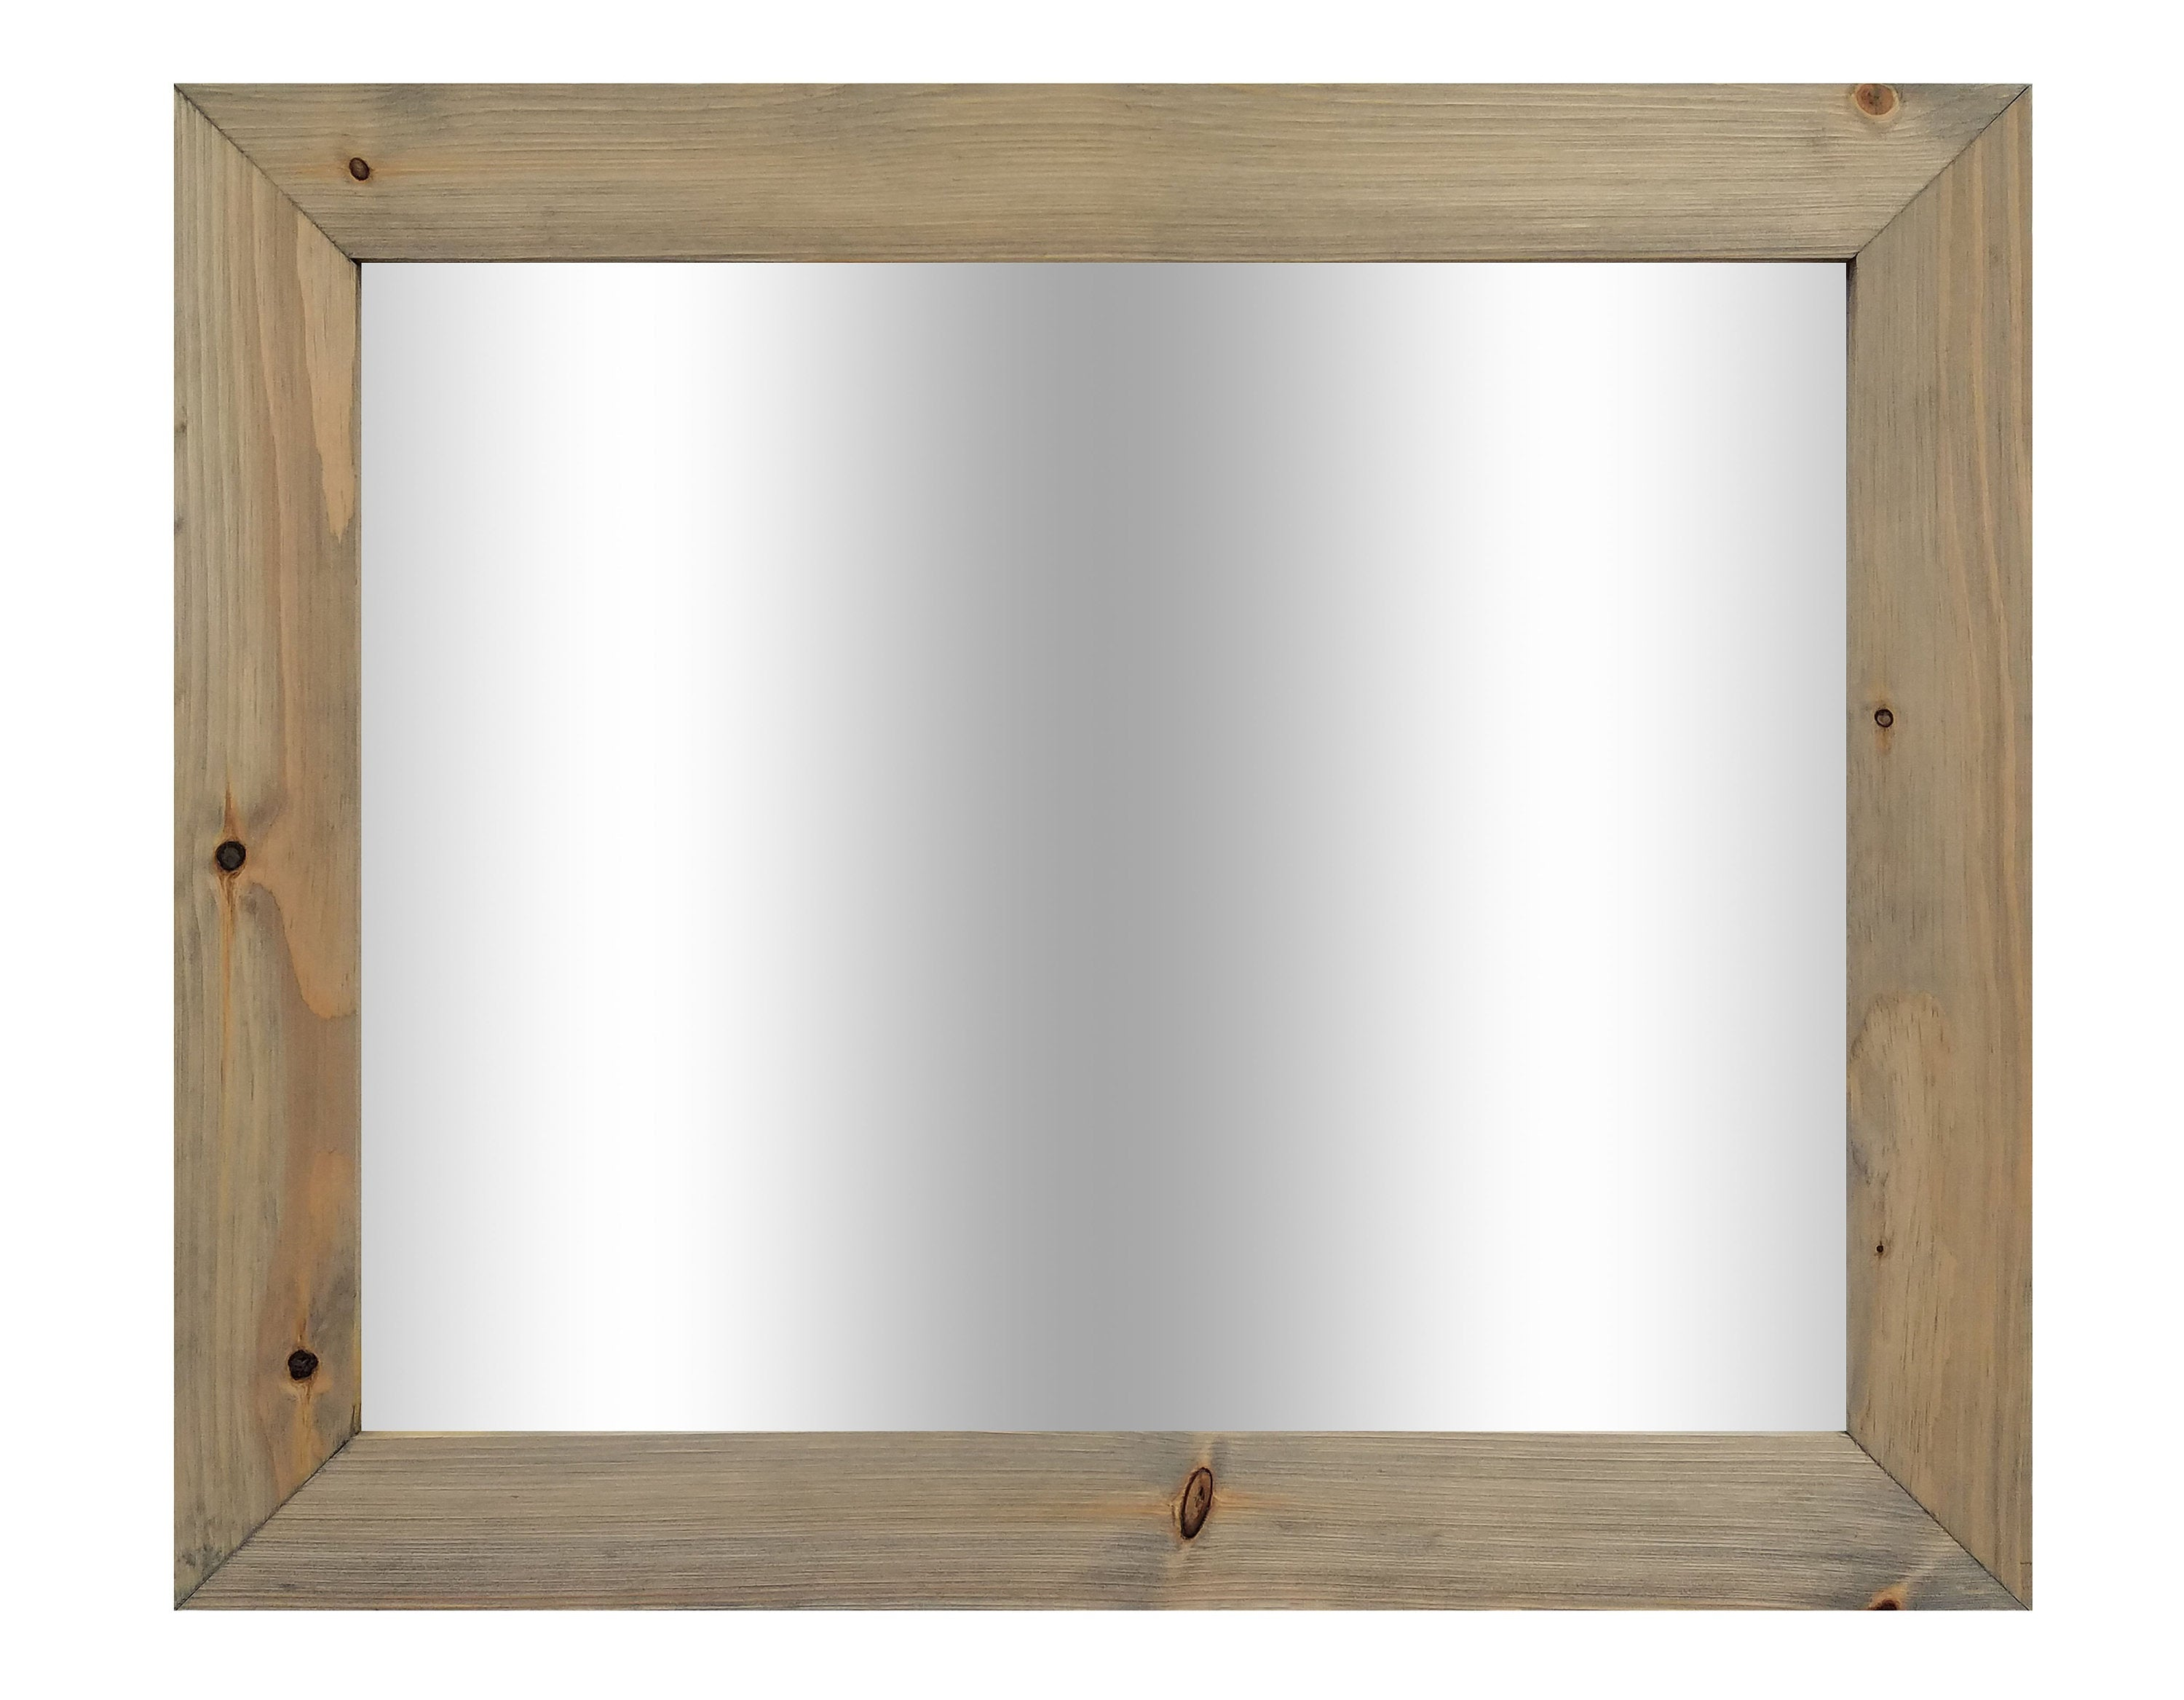 Shiplap Reclaimed Wood Mirror Shown in Weathered Oak, 4 Sizes & 20 Stains - Renewed Decor & Storage